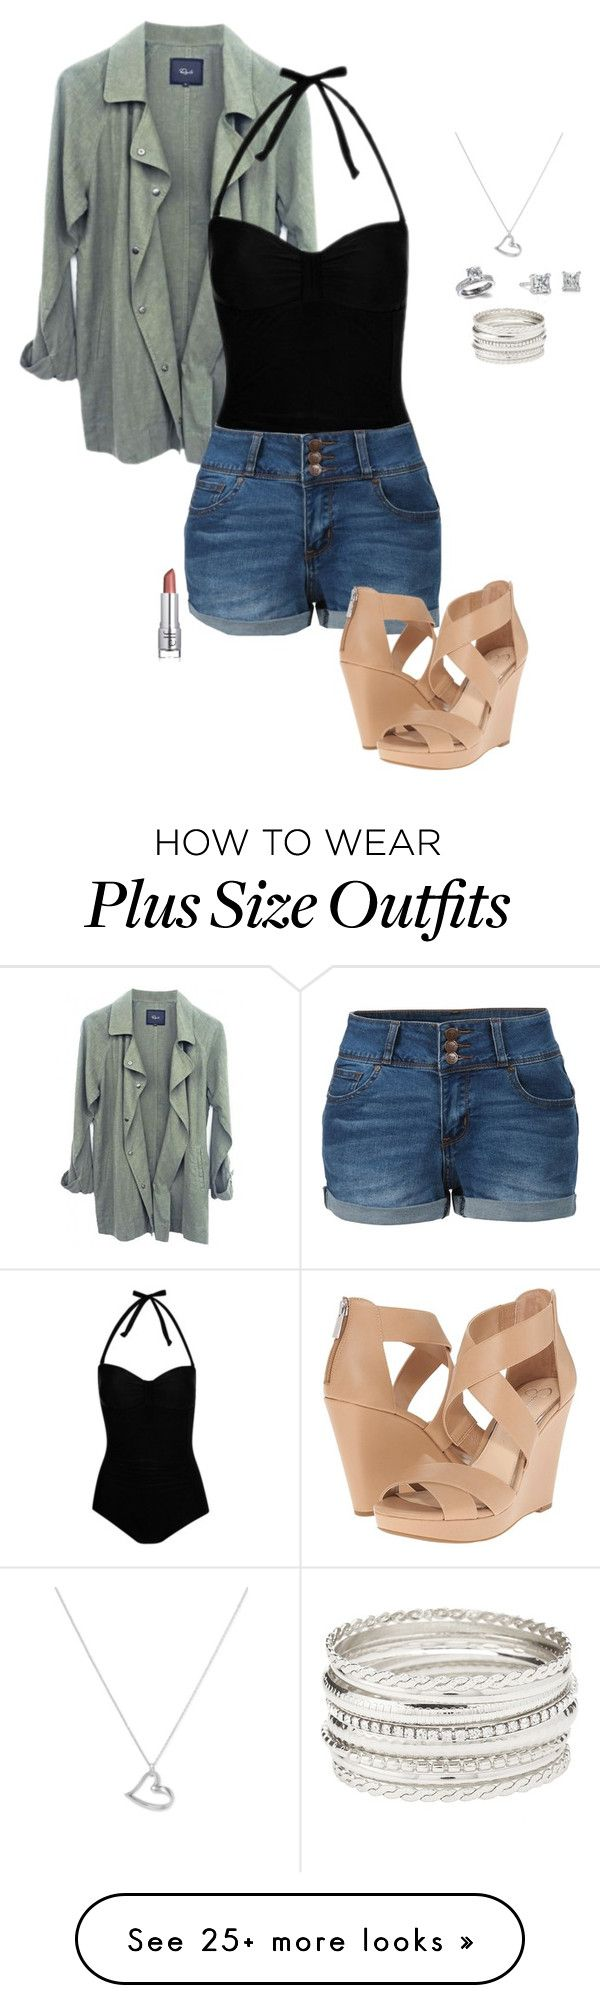 """Untitled #4447"" by gone-girl on Polyvore featuring George, LE3NO, Charlotte Russe, Jessica Simpson, Argento Vivo, Fantasy Jewelry Box and Blue Nile"